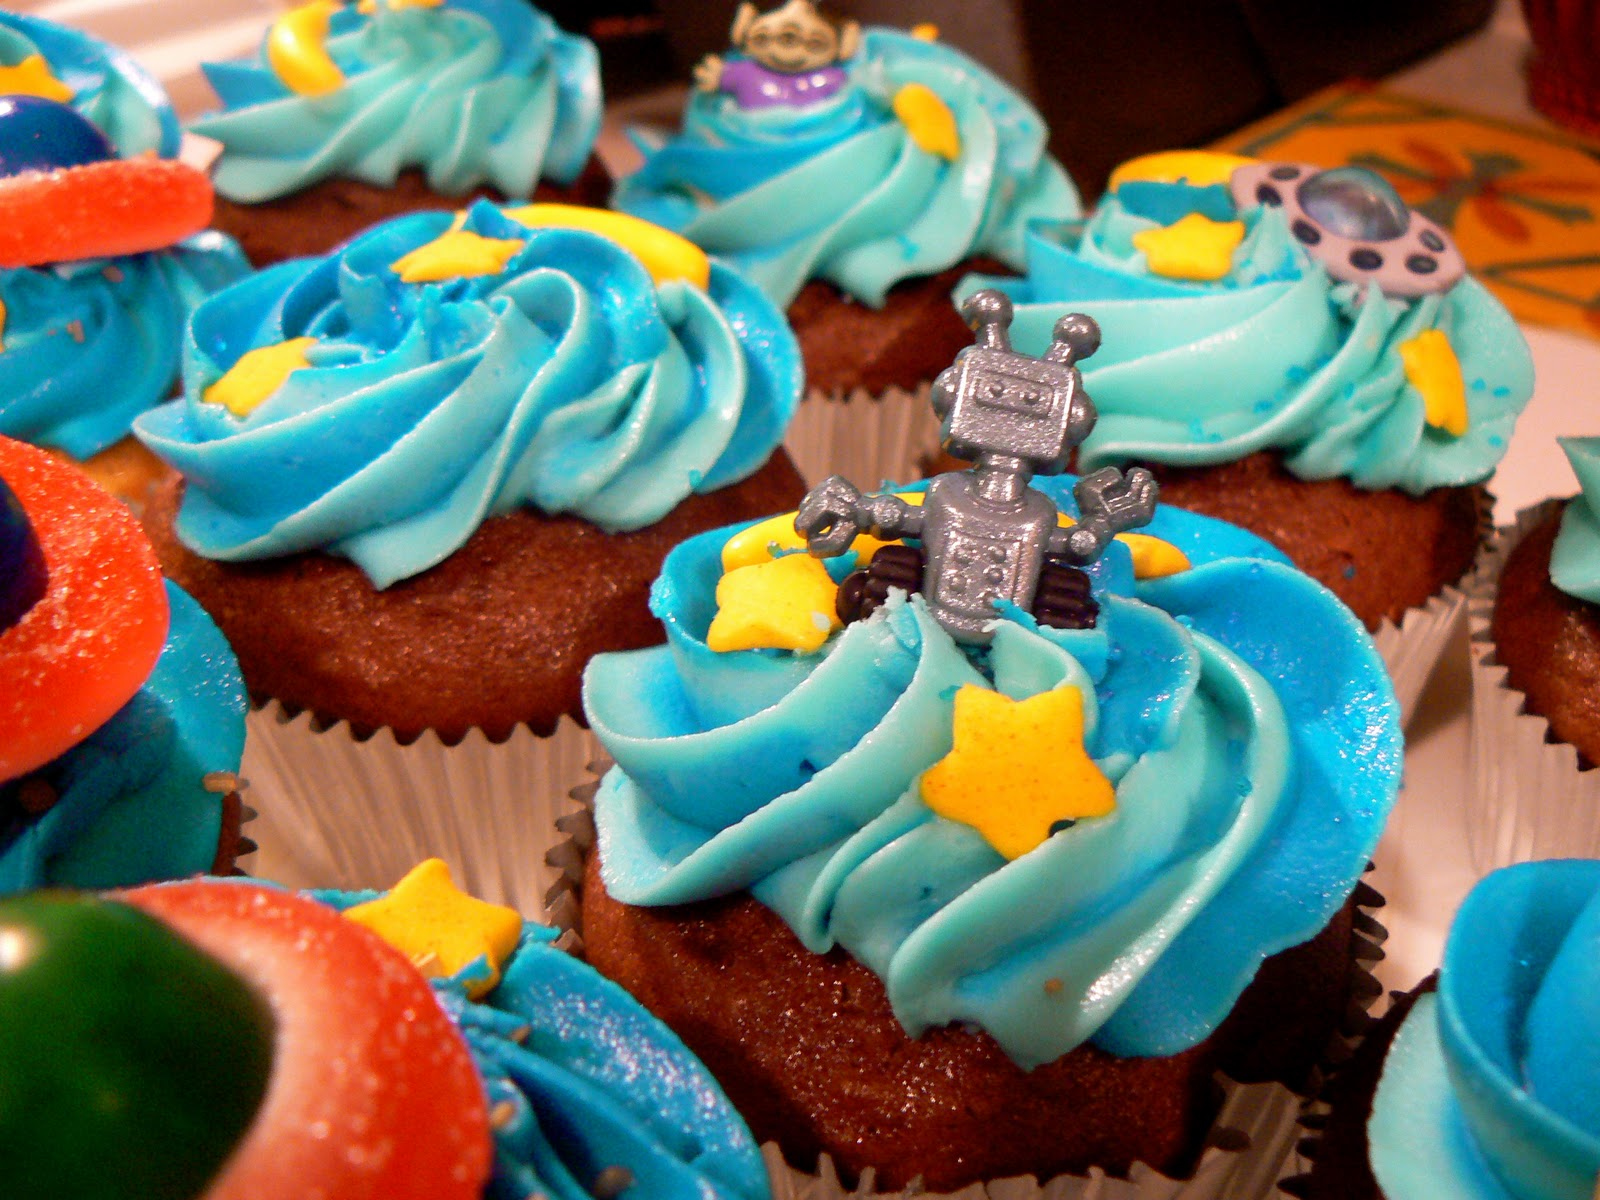 The Fashionable Cupcake Outer Space Cupcakes